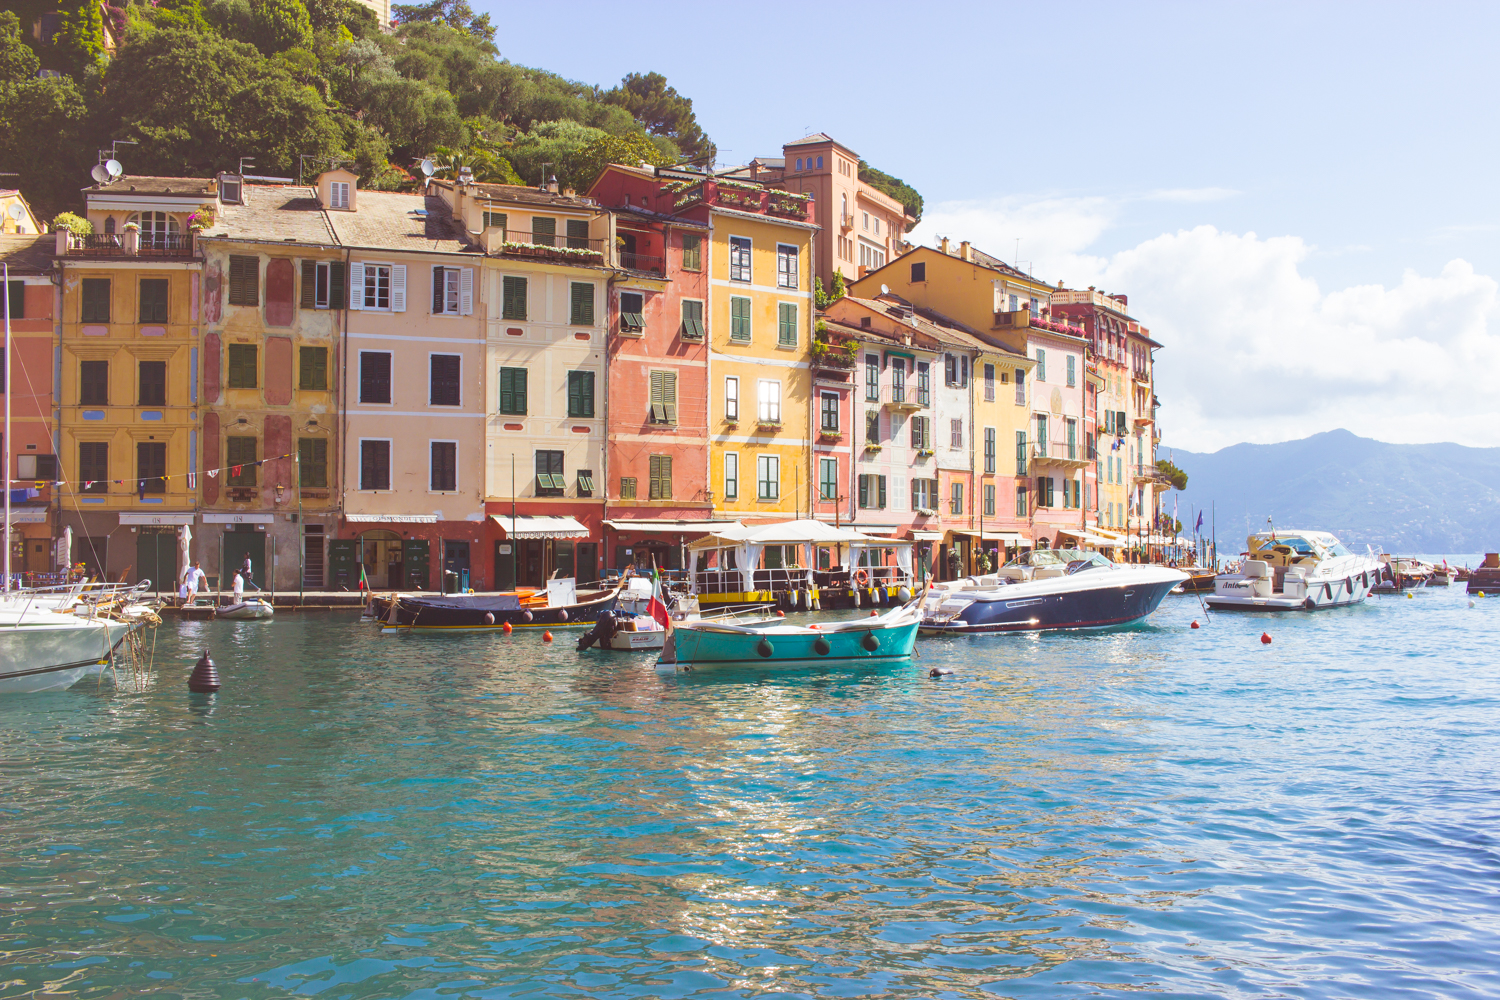 livvyland-blog-olivia-watson-austin-texas-fashion-travel-blogger-princess-royal-mediterranean-cruise-portofino-cinque-terre-italy-what-to-do-see-eat-1